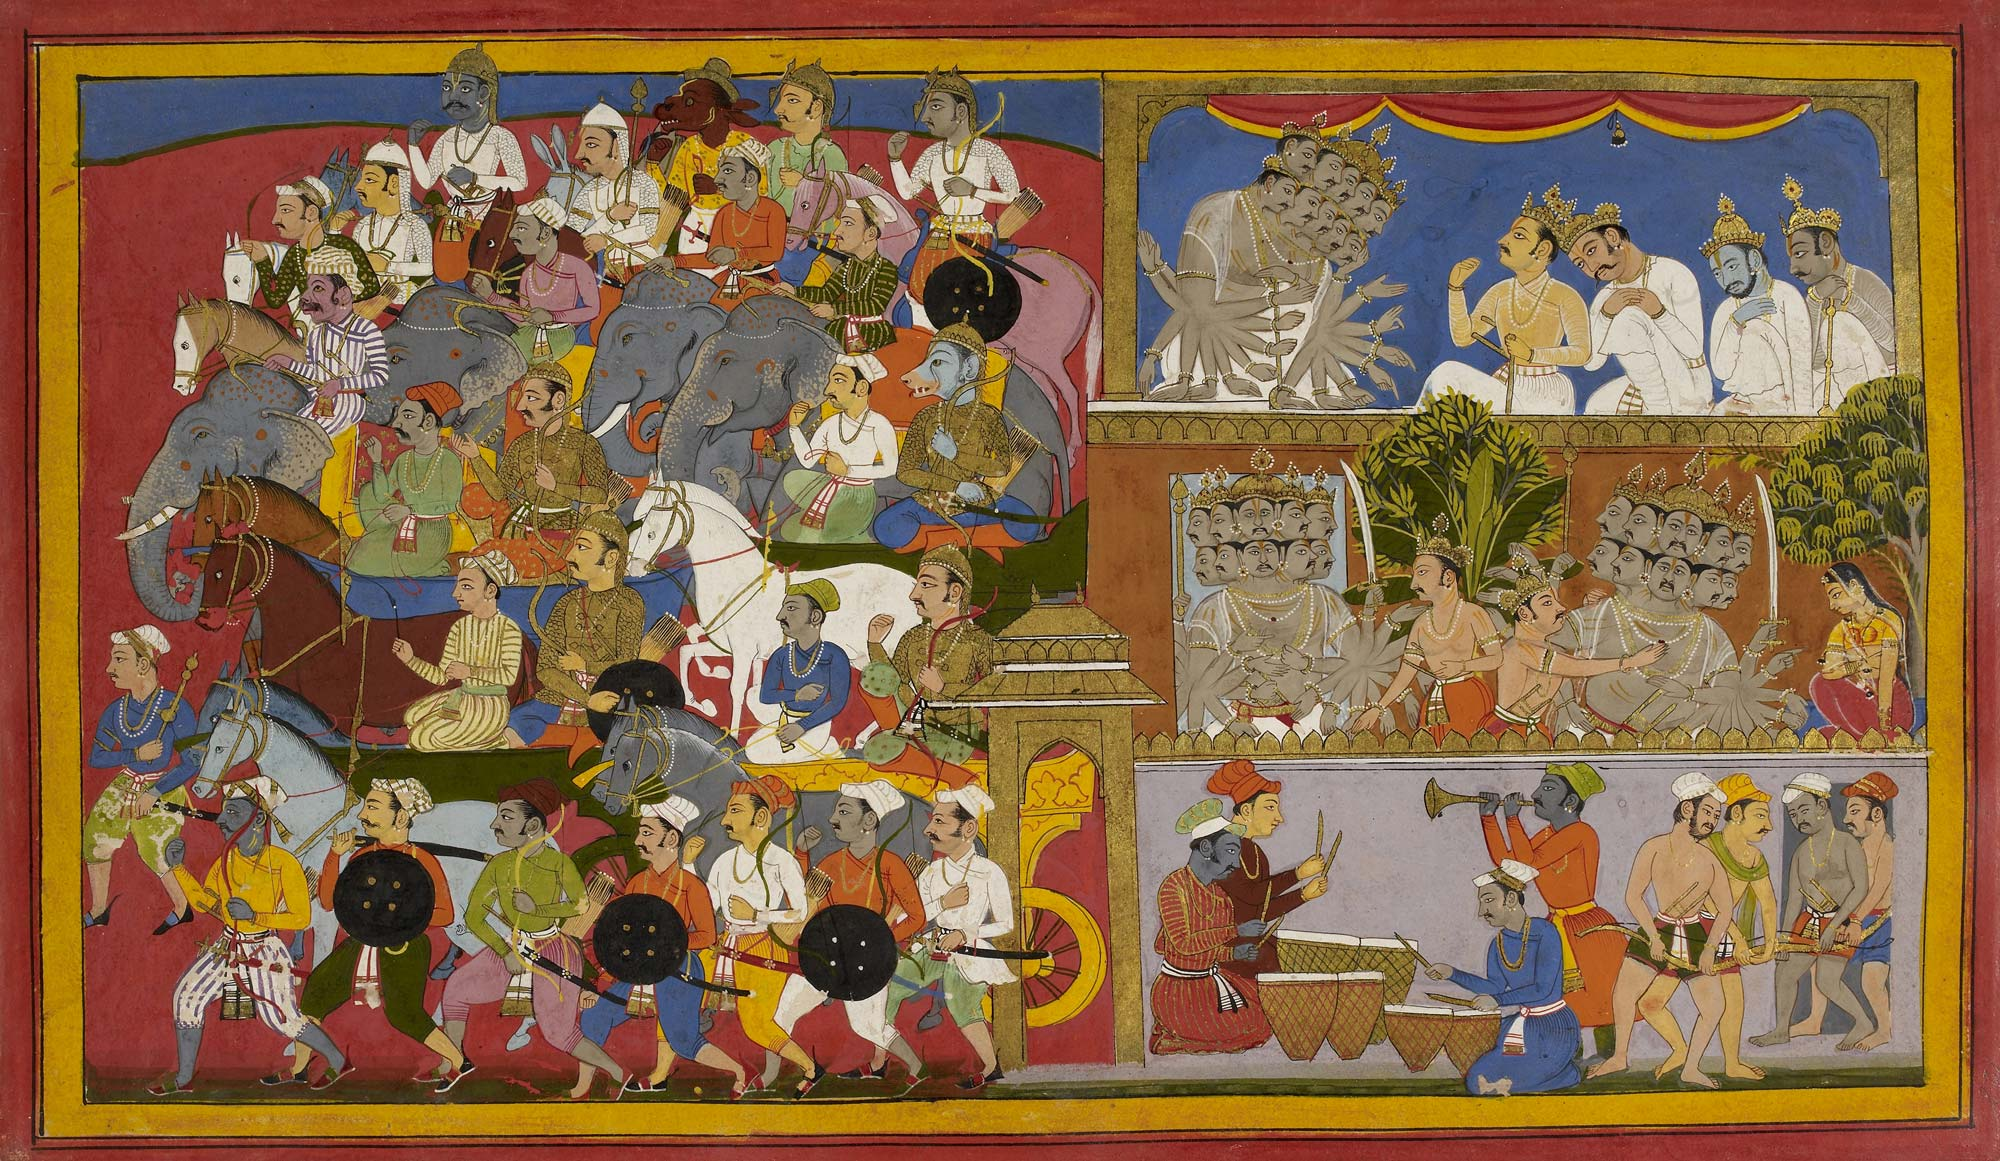 Ravana sends out more troops to battle Lord Rama, f.128